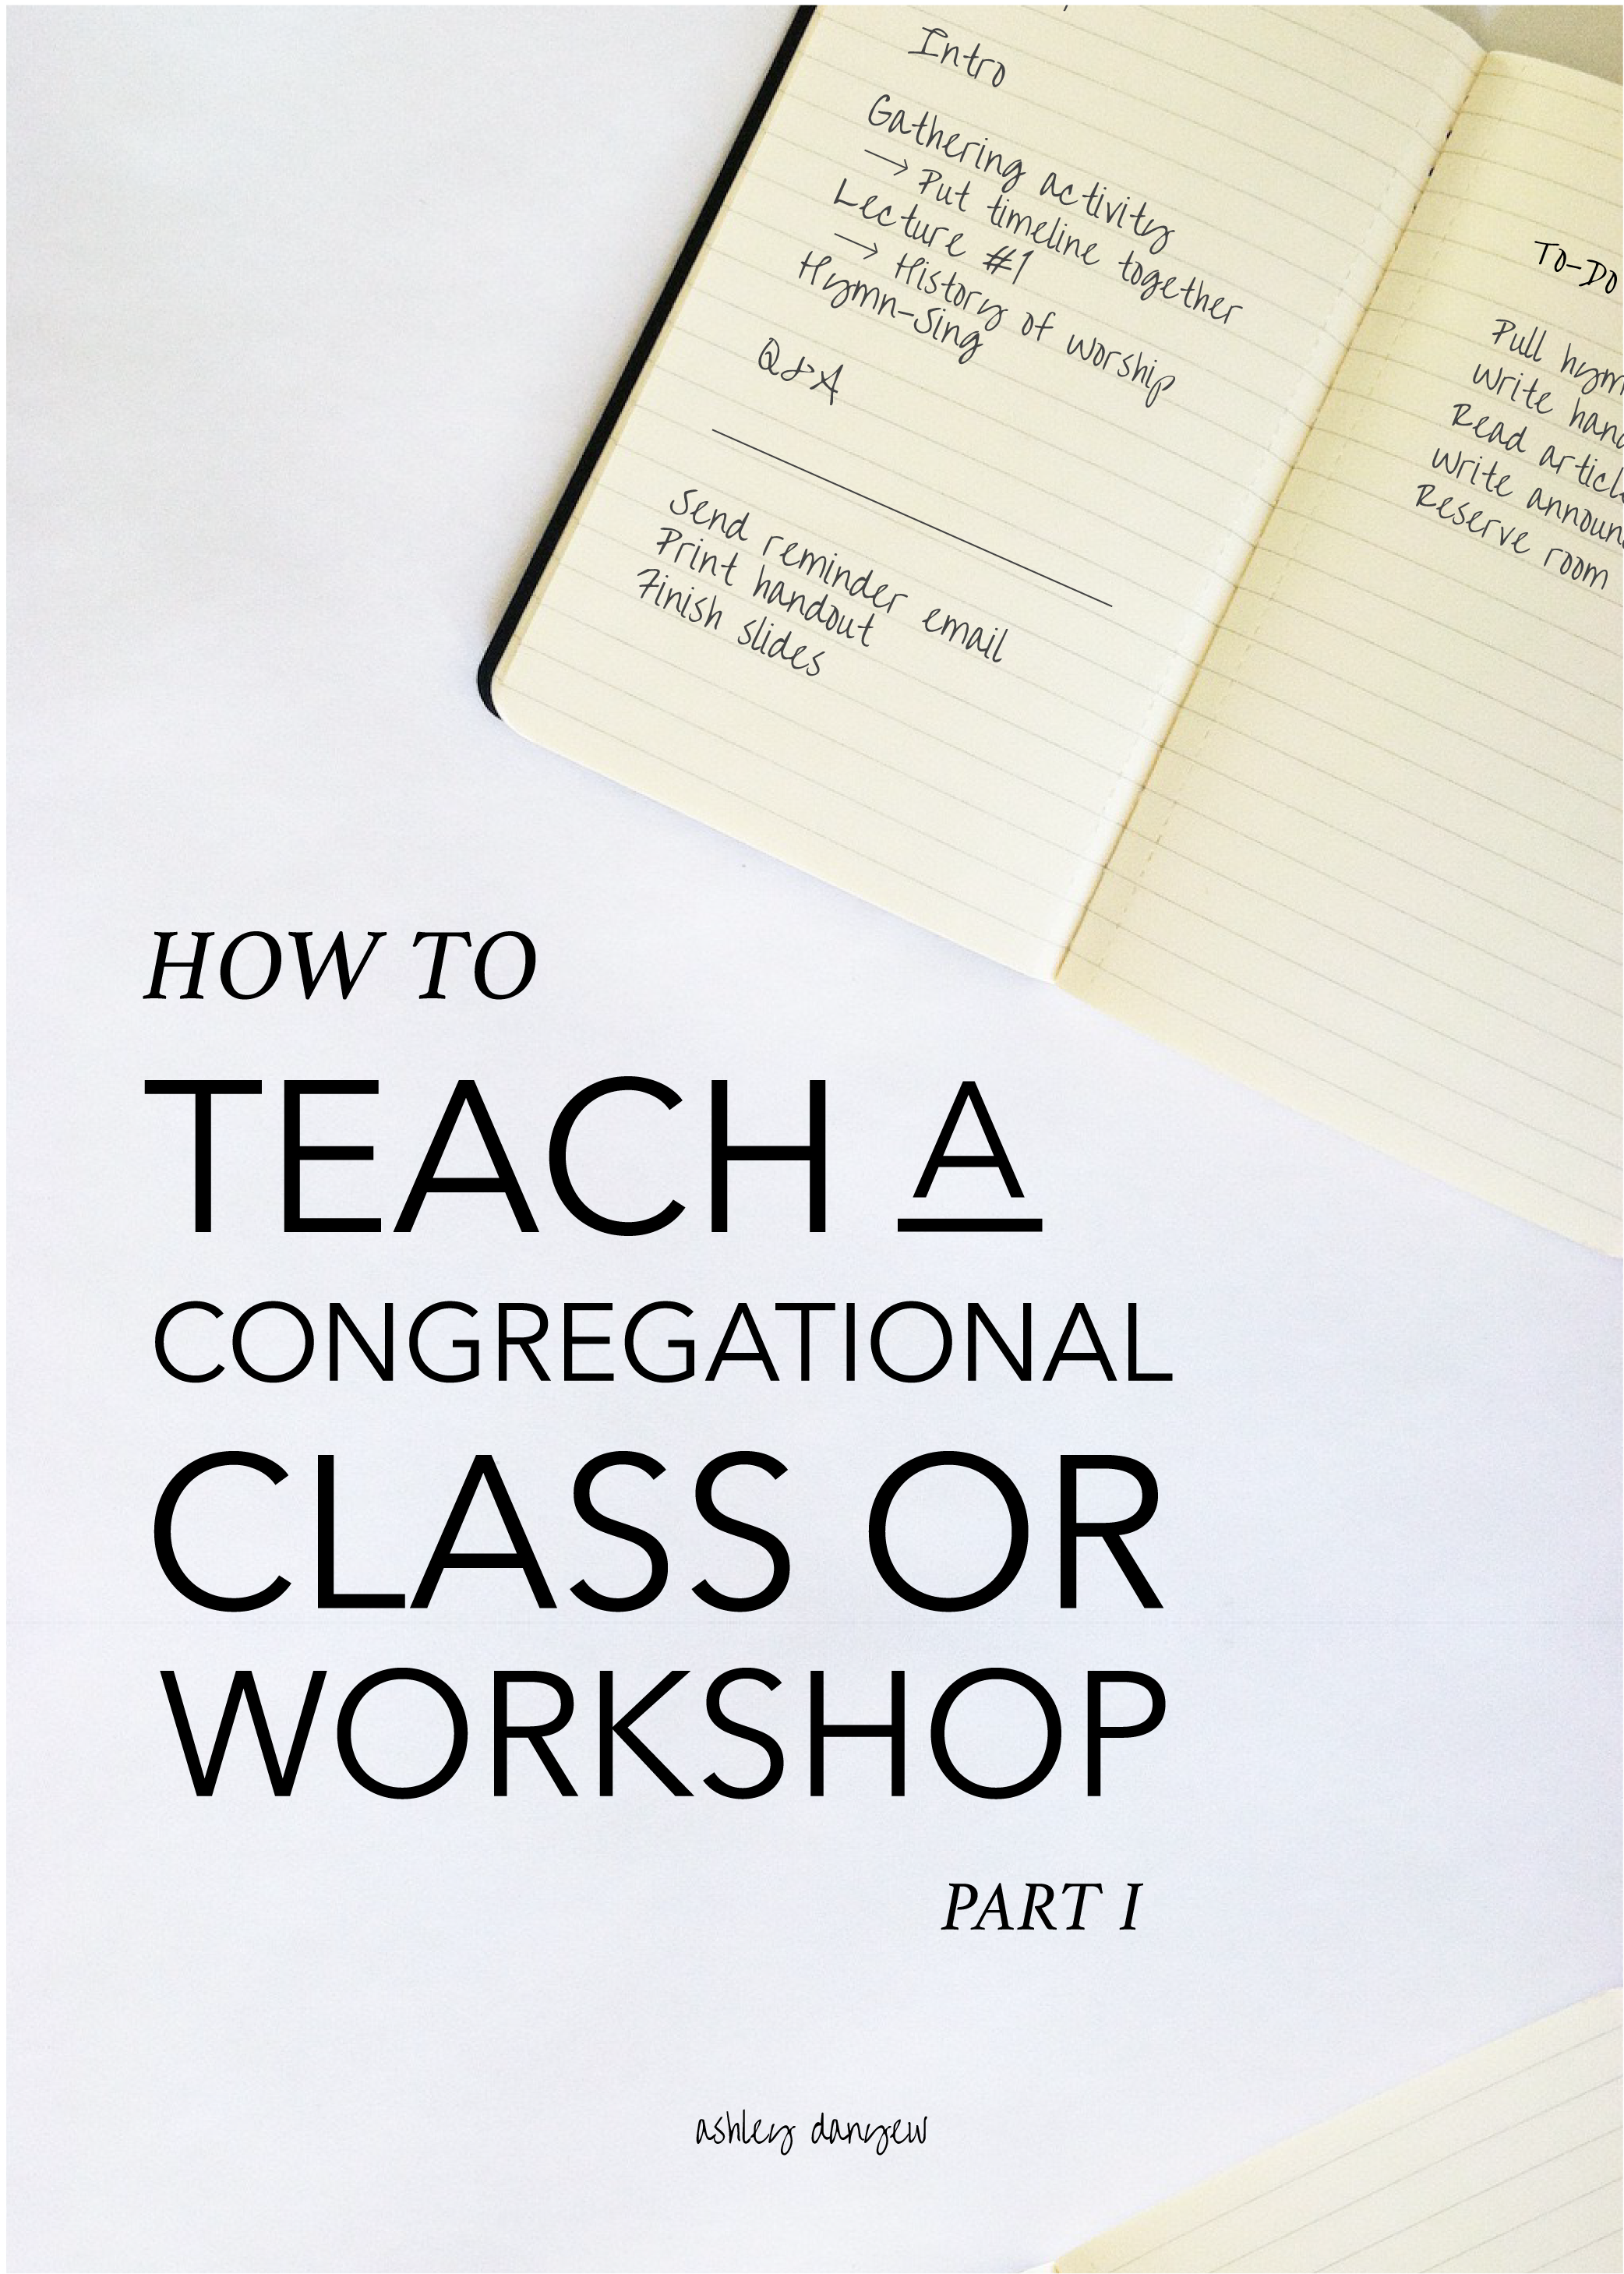 How to Teach a Congregational Class or Workshop-01-01.png